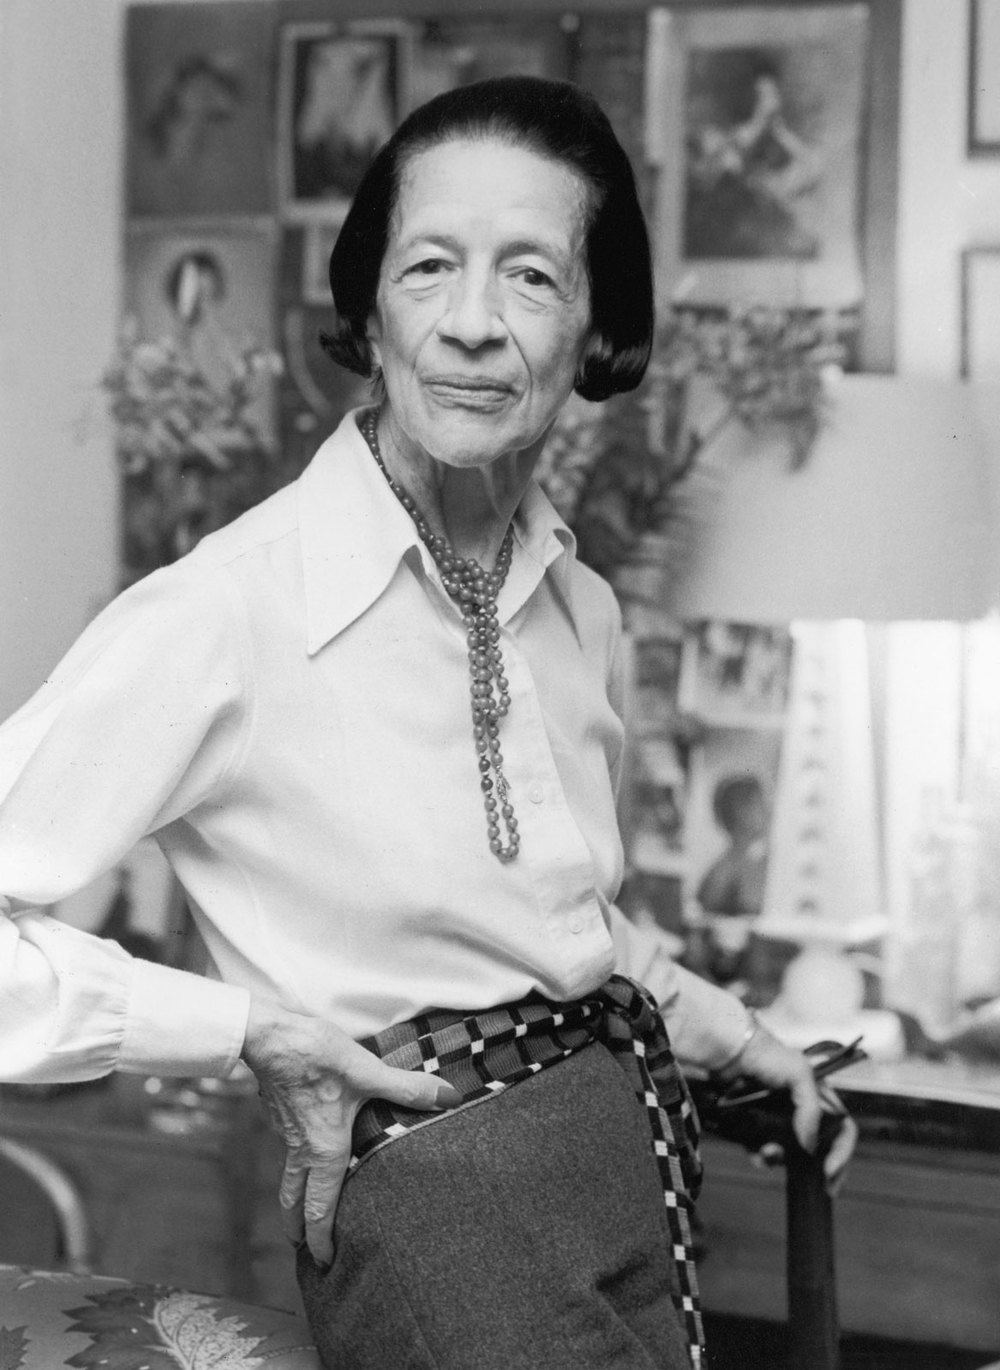 ELEGANT, POISED AND BRIMMING WITH STYLE, THE LATE GREAT DIANA VREELAND